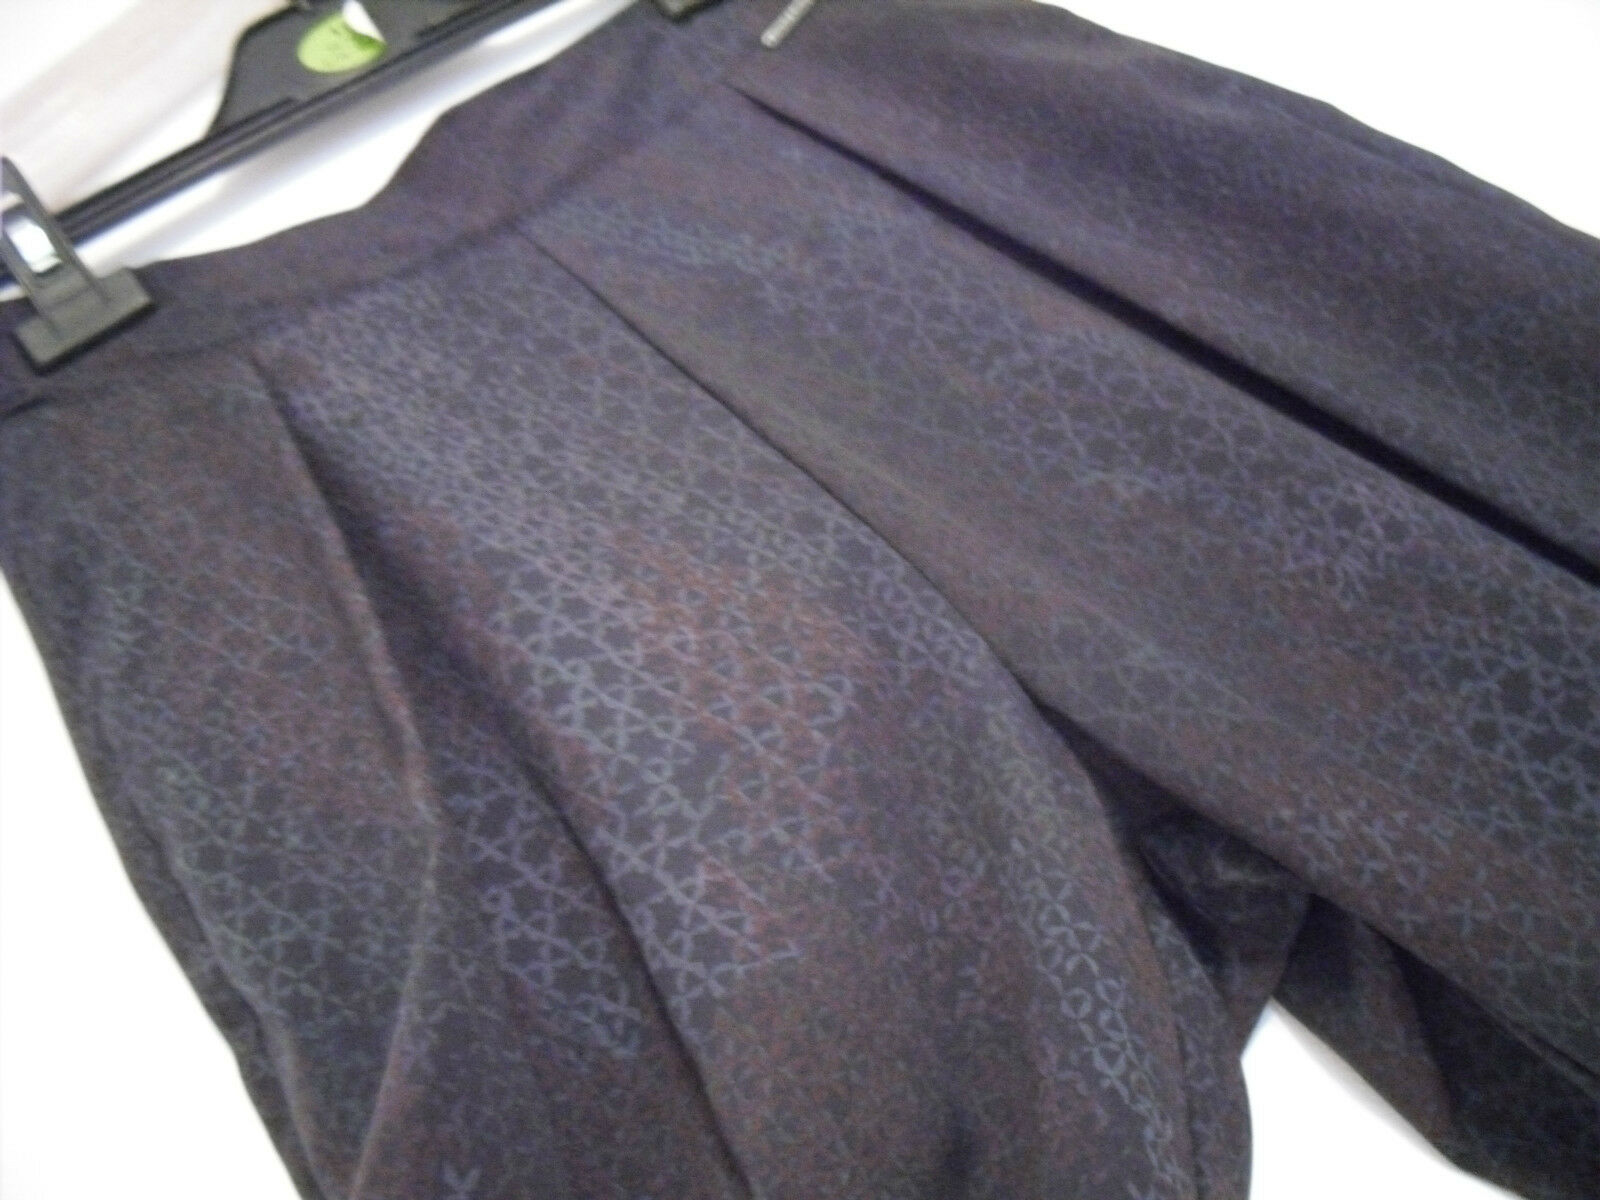 LADIES PALAZZO TROUSERS BY ITALIAN DESIGNER OTTOD'AME SIZE 8 - BNWT RRP